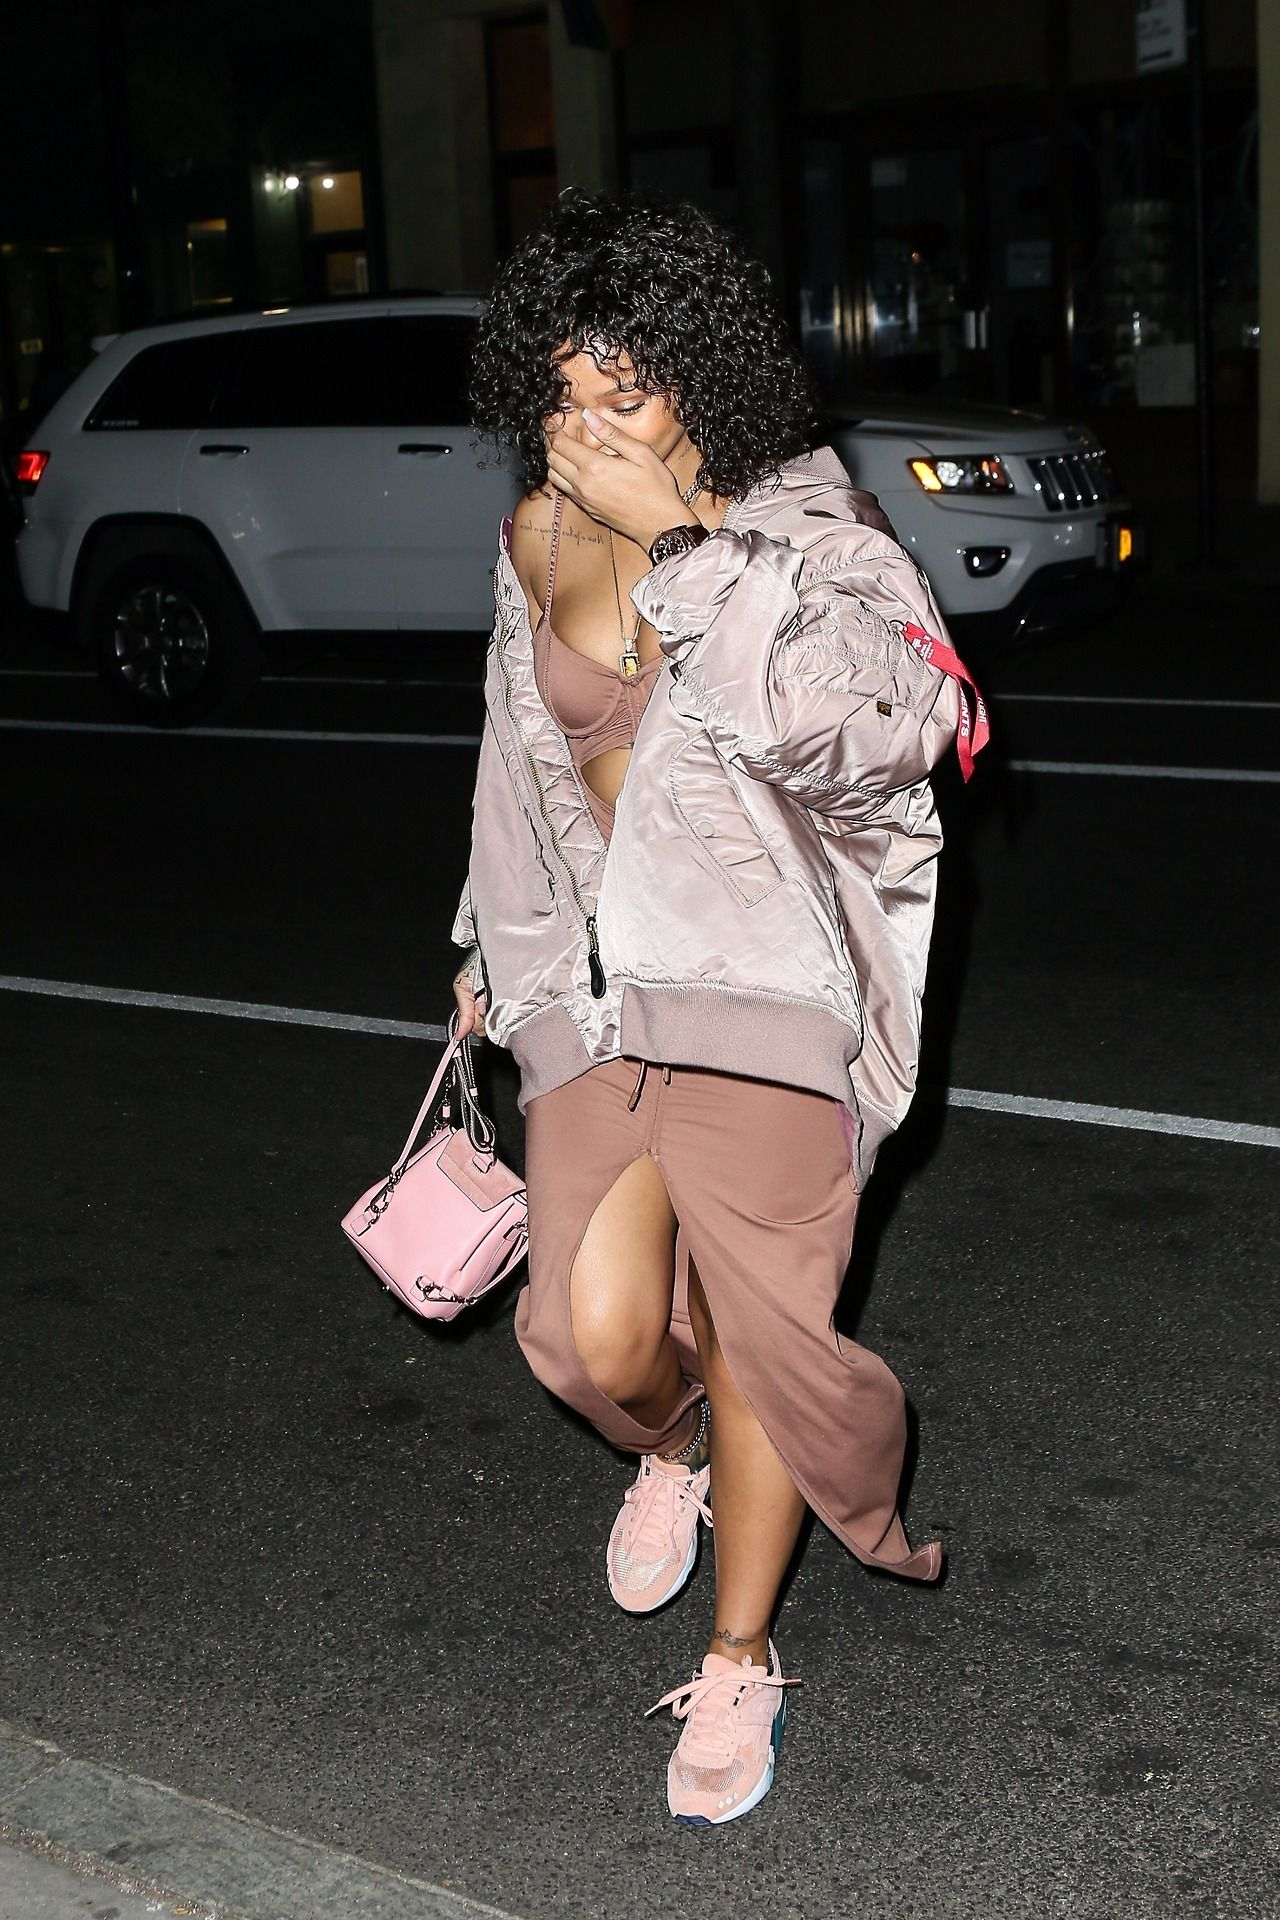 794c95fb3 Rihanna arriving at the Electric Lady Studios in New York City. (October  21, 2017)